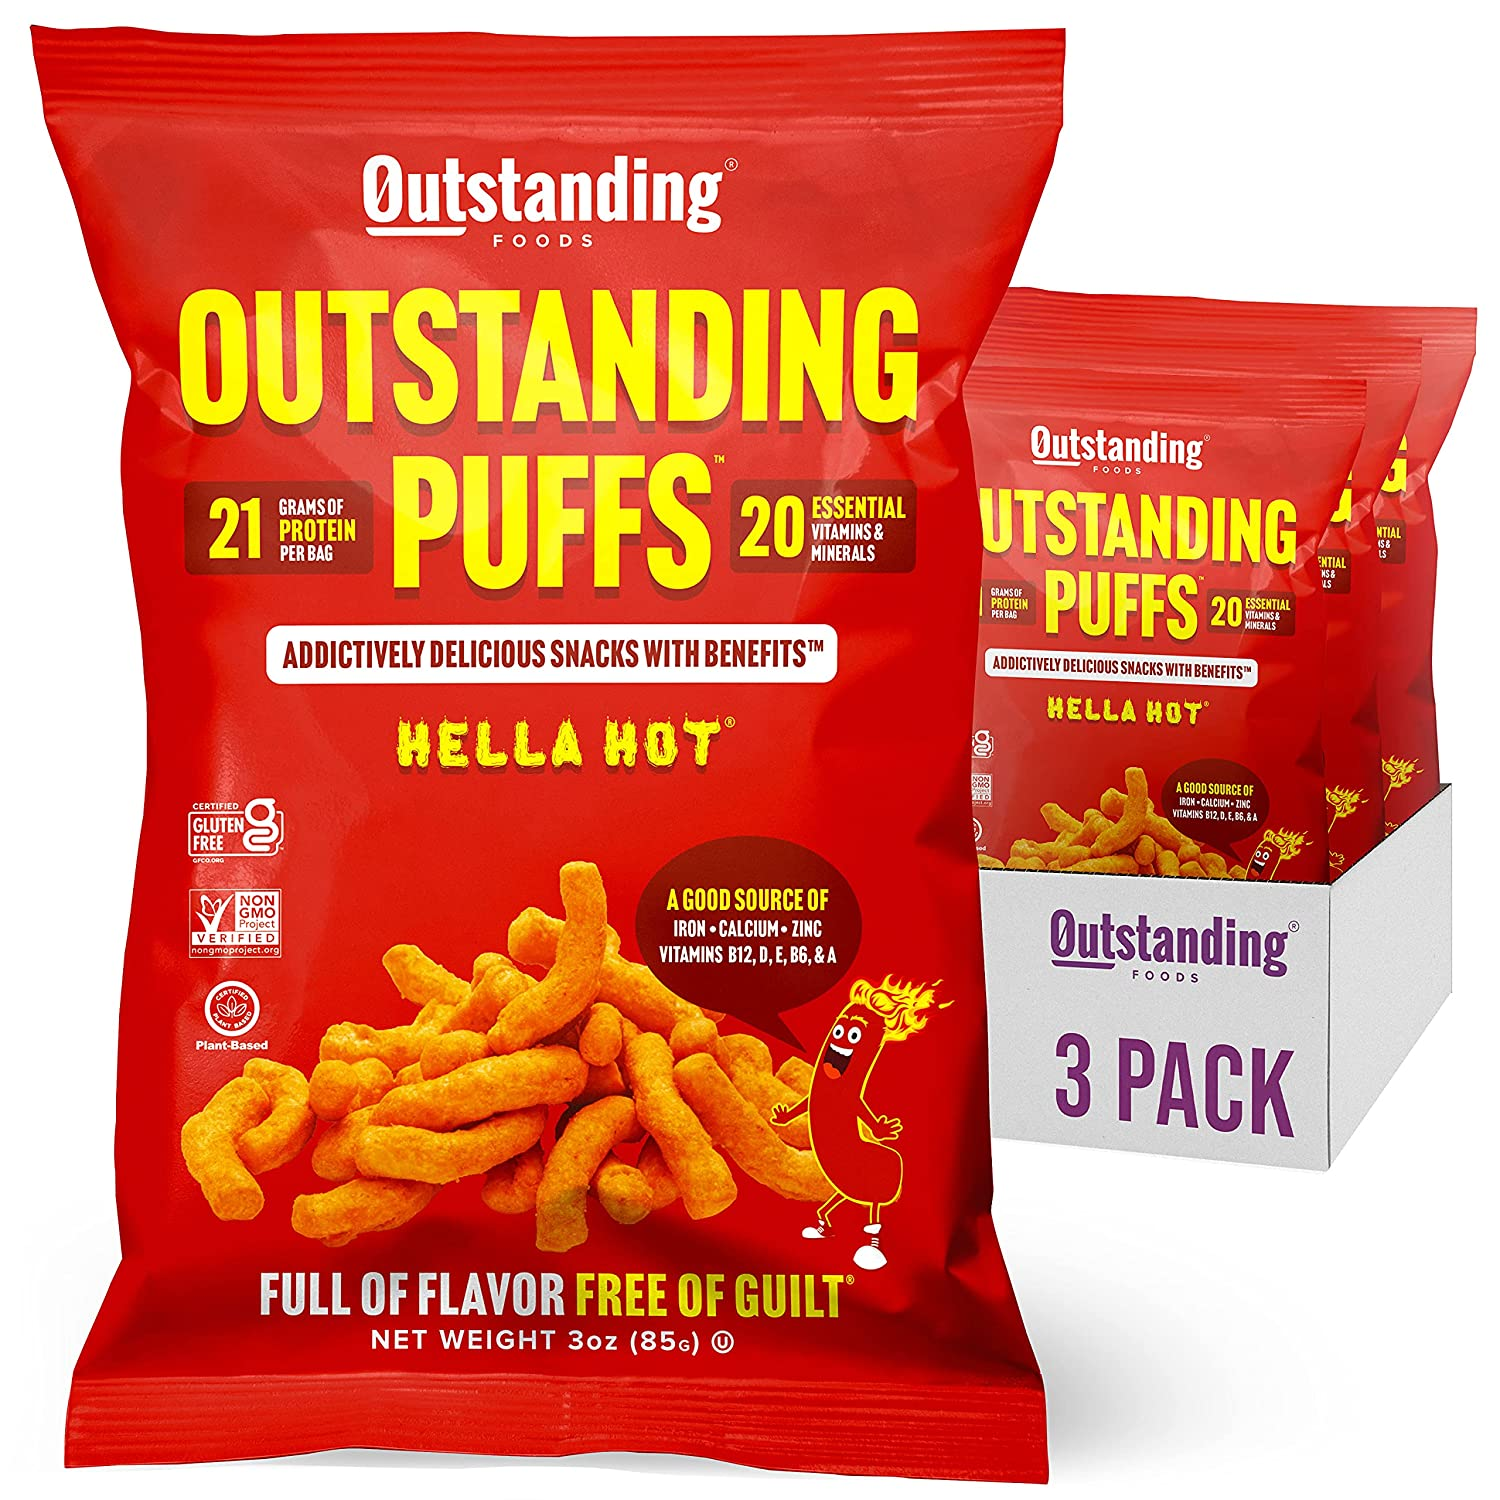 Outstanding Puffs   High Protein Healthy Snacks   Plant Based, Vegan, Certified Kosher, Gluten Free, Soy Free   Hella Hot, 3oz Bag, Pack of 3